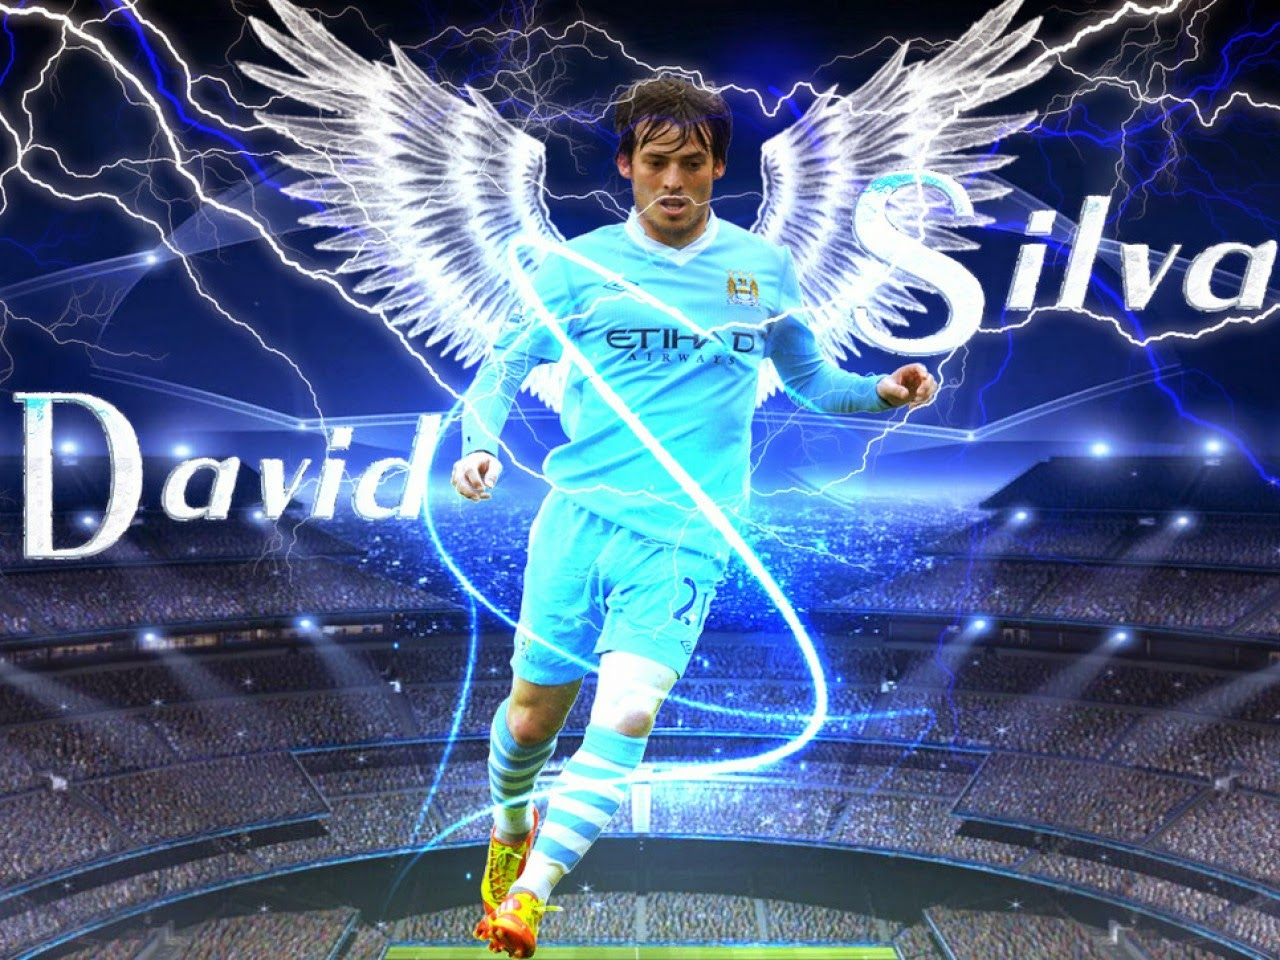 Download David Silva Wallpapers HD Wallpaper